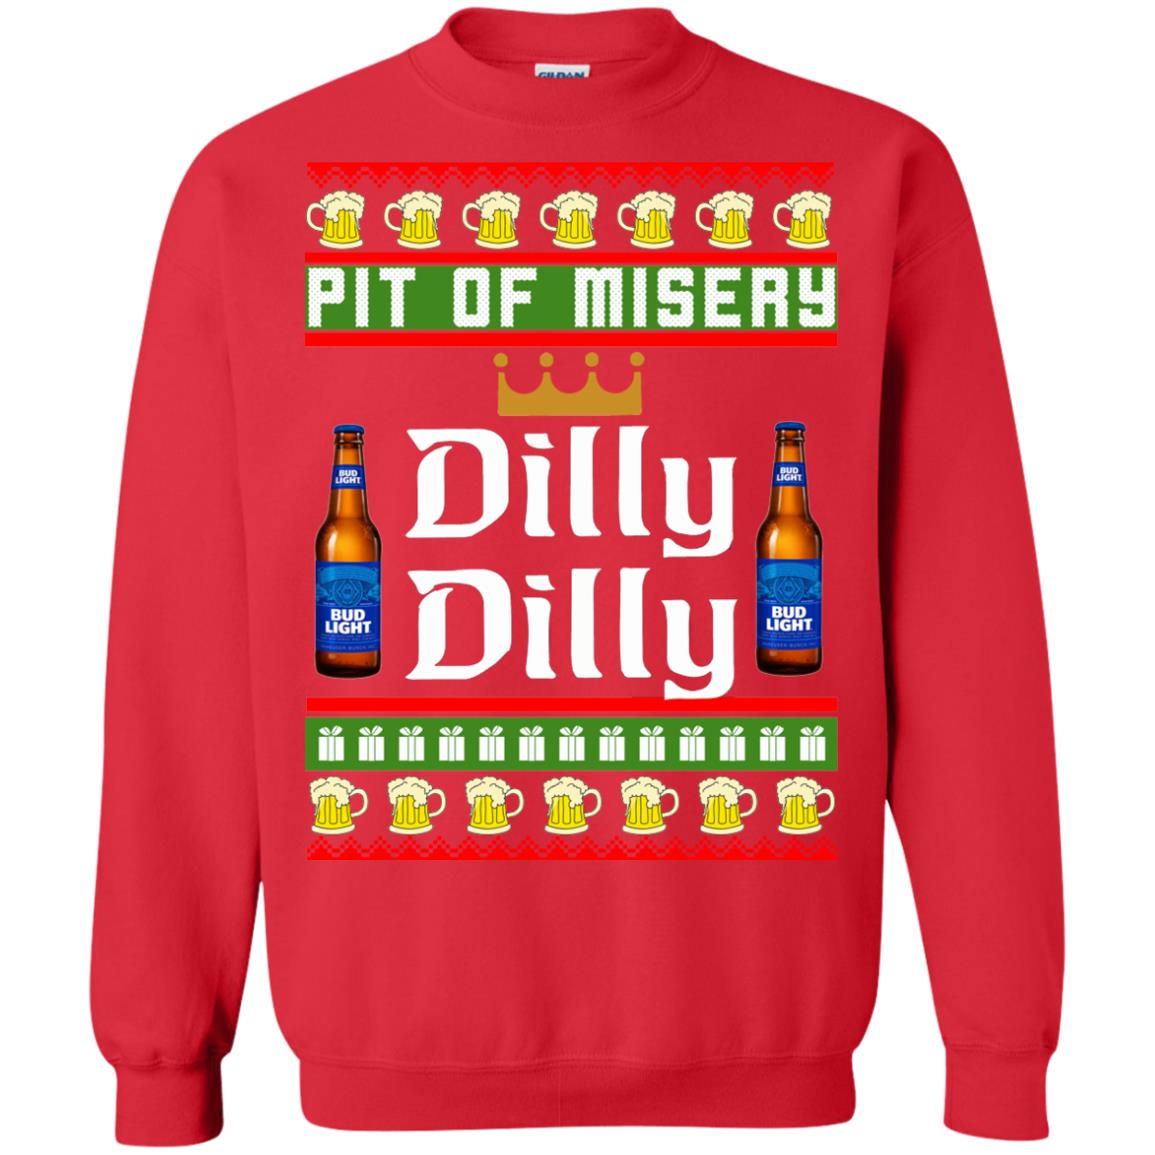 image 6386 - Pit Of Misery Dilly Dilly Ugly Sweater, Long Sleeve